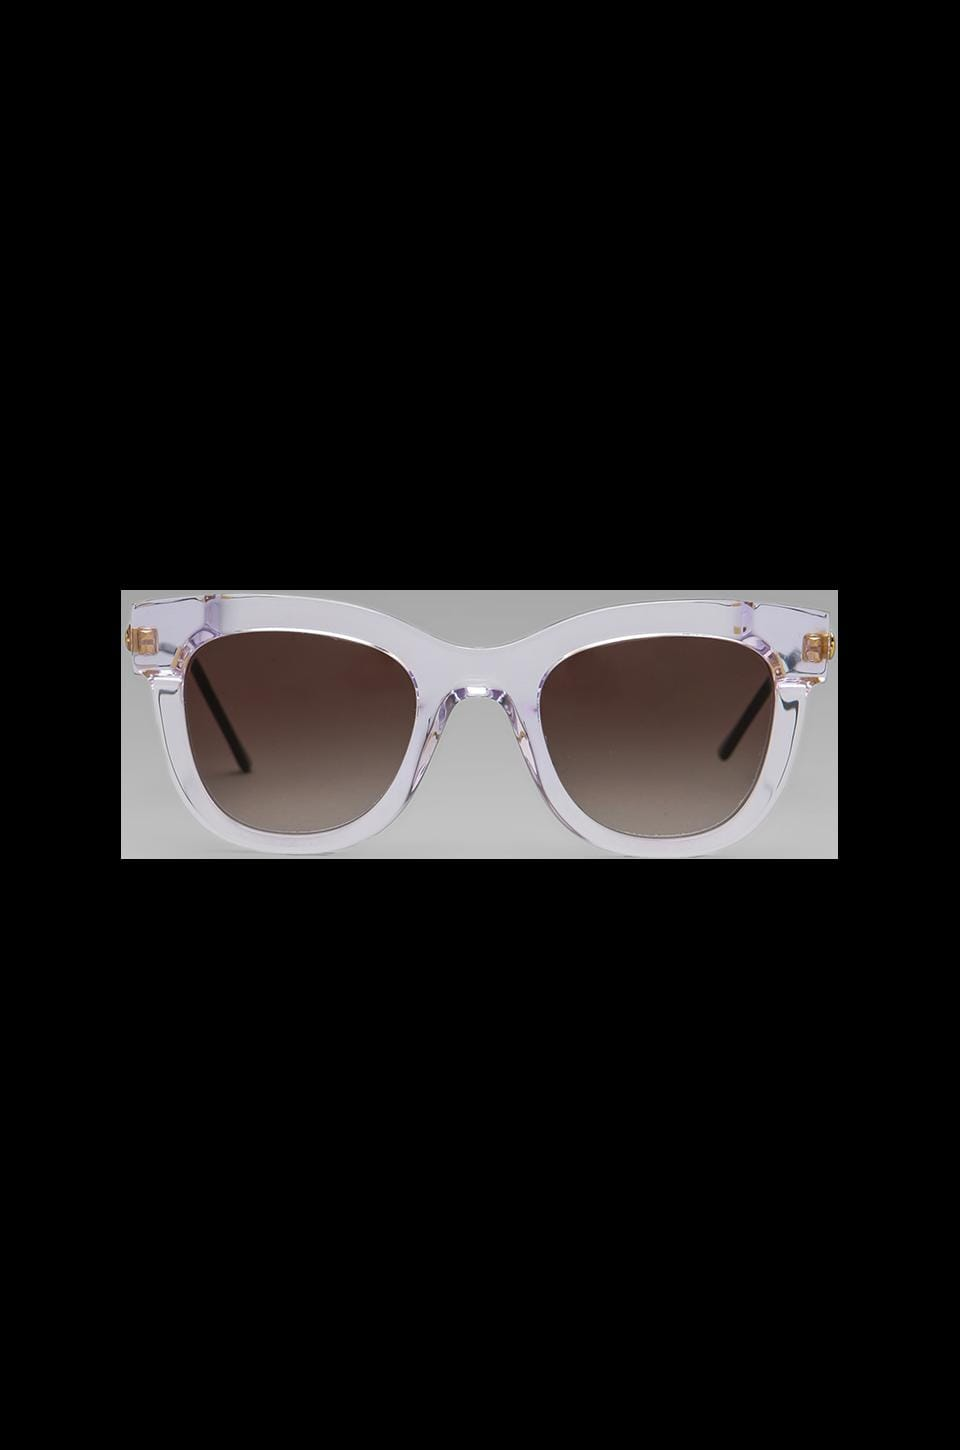 Thierry Lasry Sexxxy Sunglasses in Clear